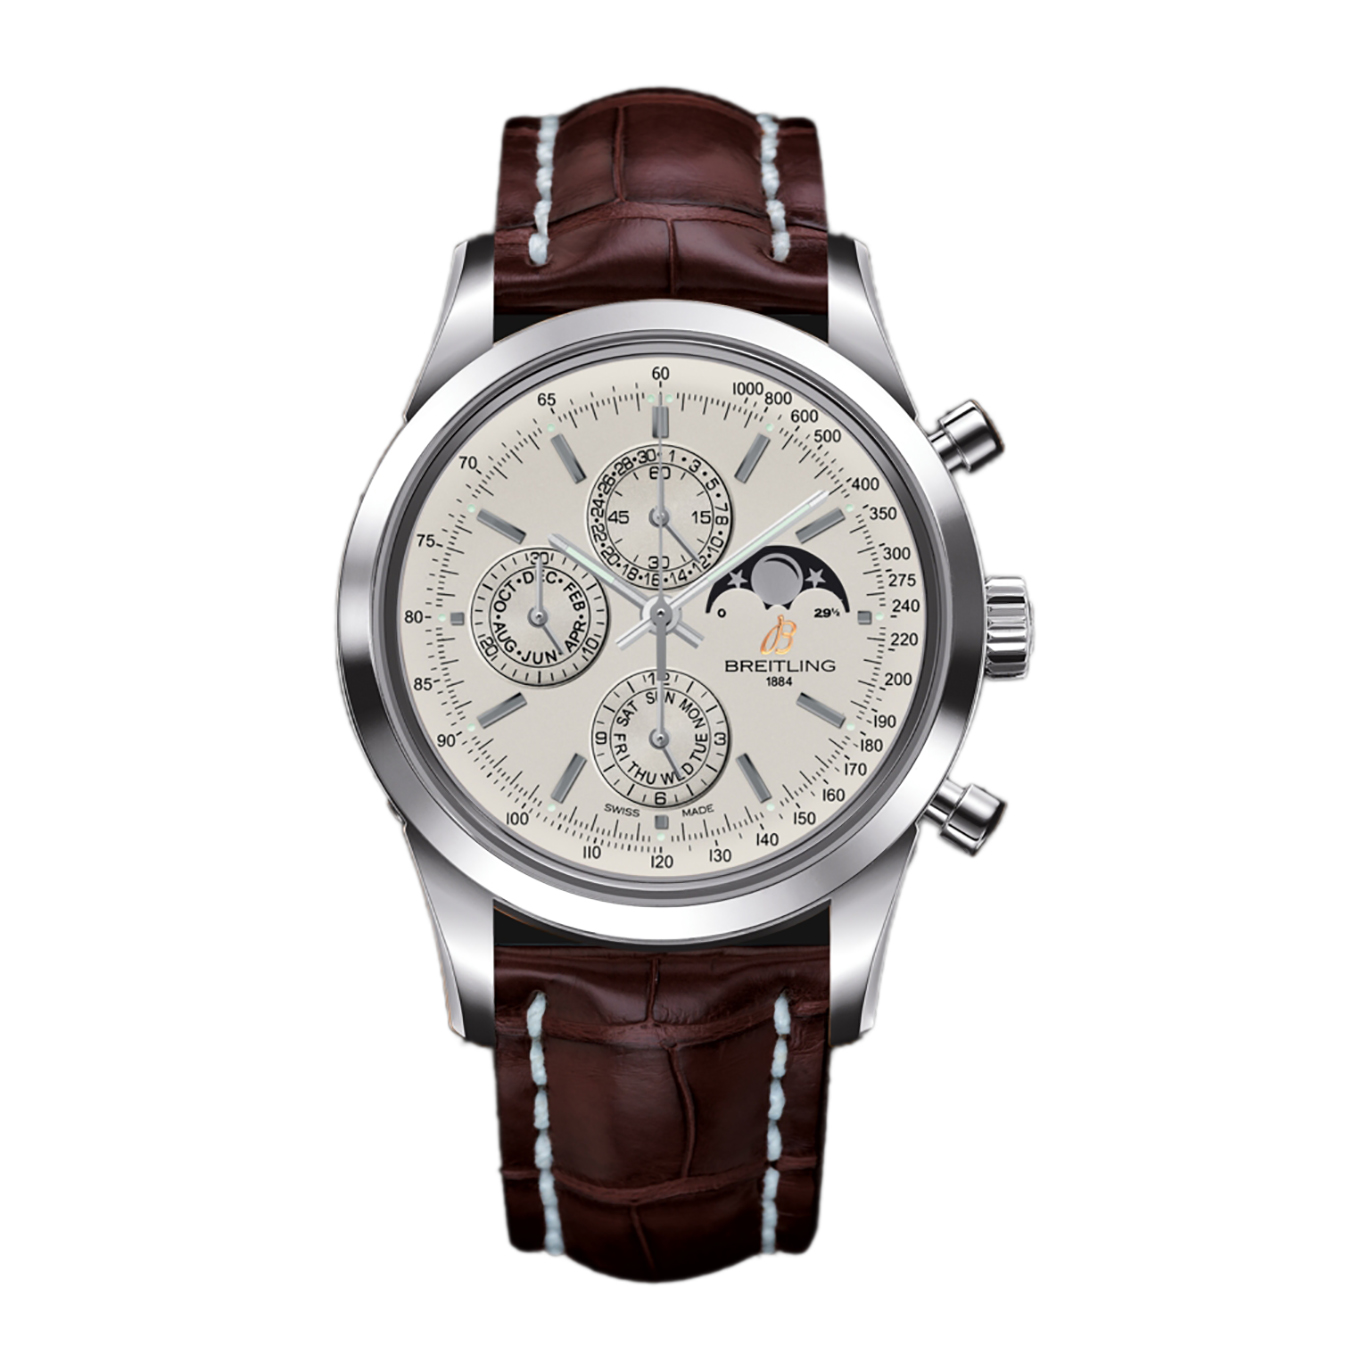 The silvery dial fake watch has moon phase.